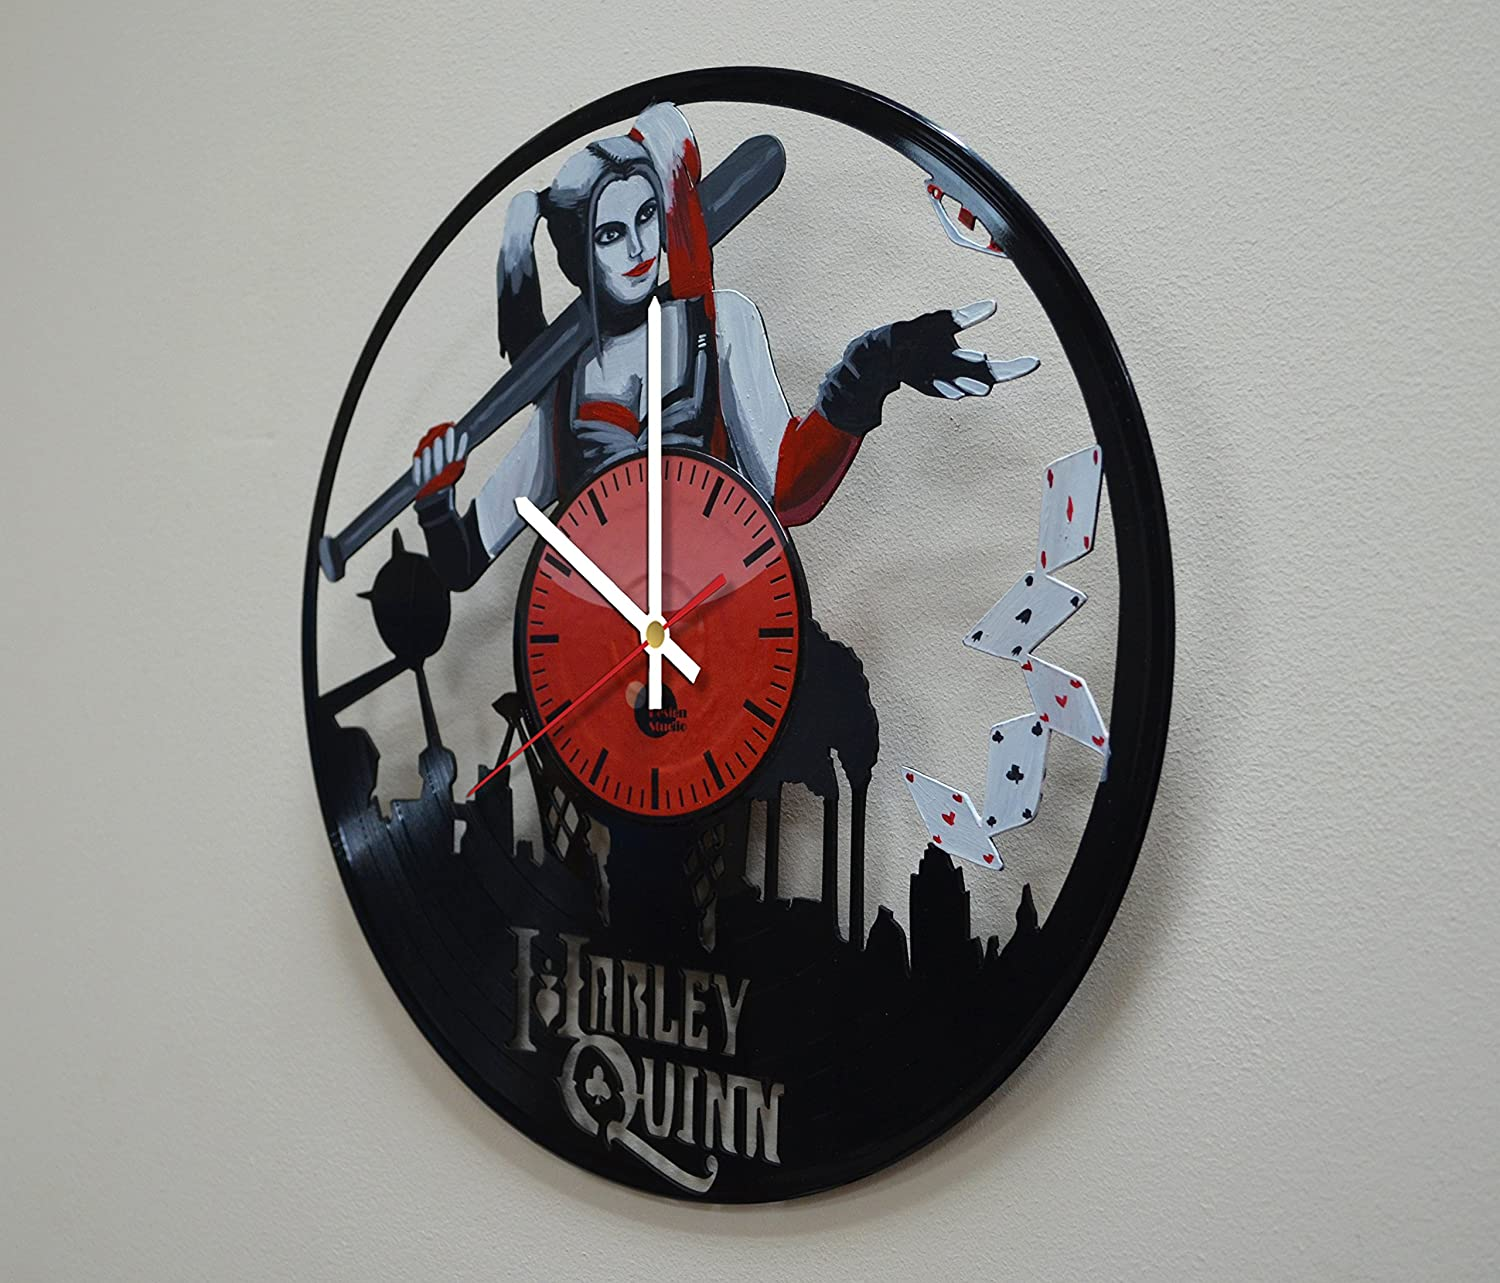 Taniastore Harley Quinn Design Handpainted Vinyl Record Wall Clock – Get Unique Bedroom or Living Room Wall Decor – Gift Ideas for His and Her – Unique DC Comics Fan Art